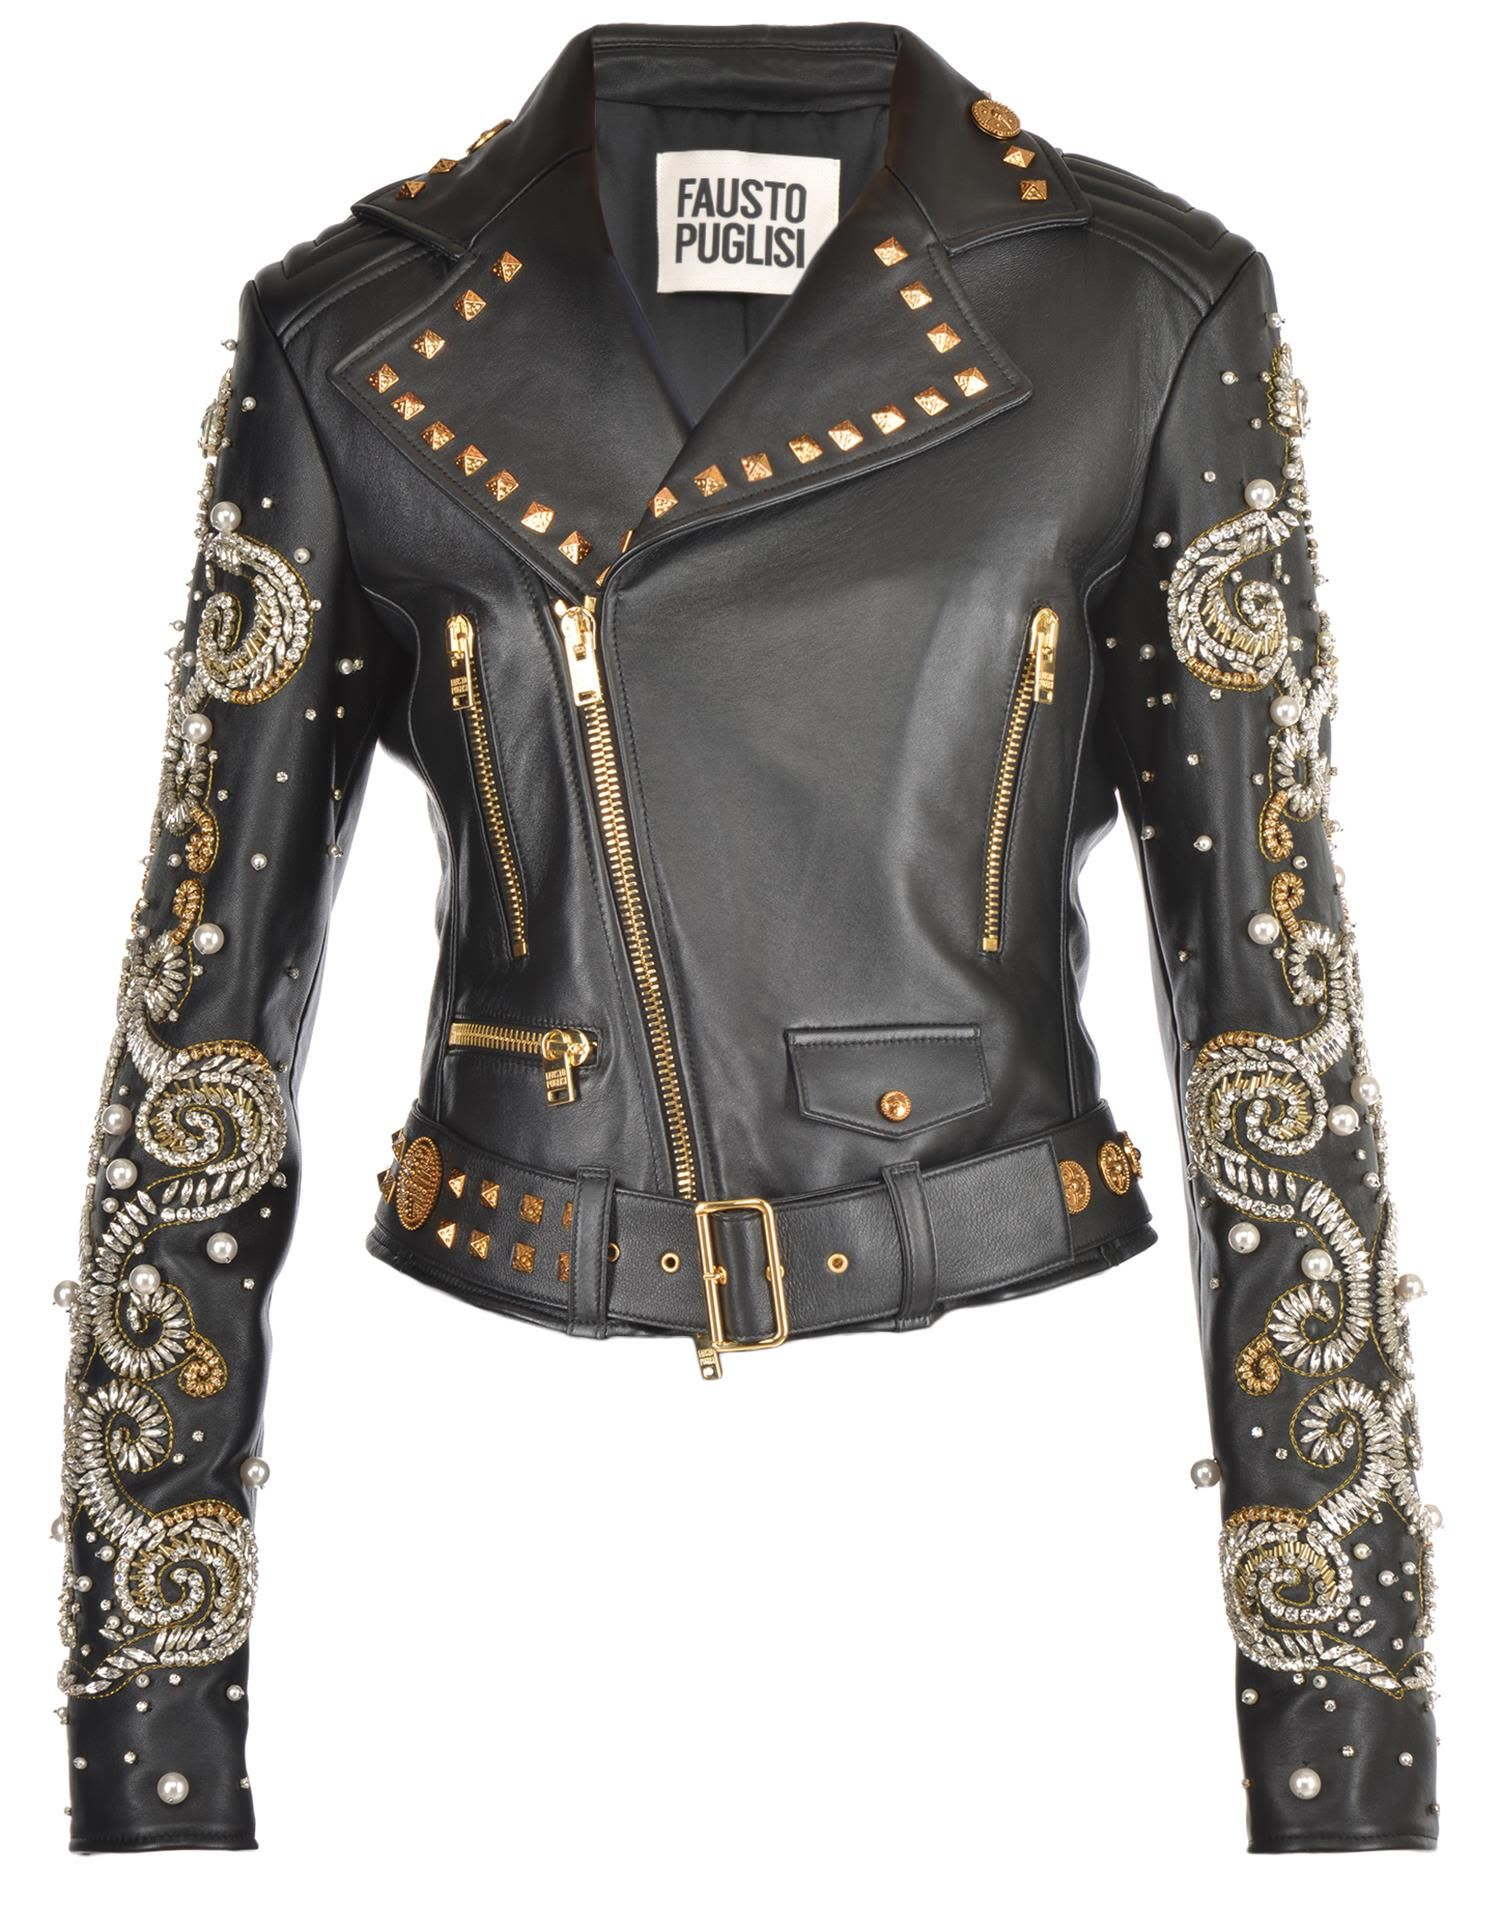 a5be673f90 FAUSTO PUGLISI LEATHER JACKET.  faustopuglisi  cloth